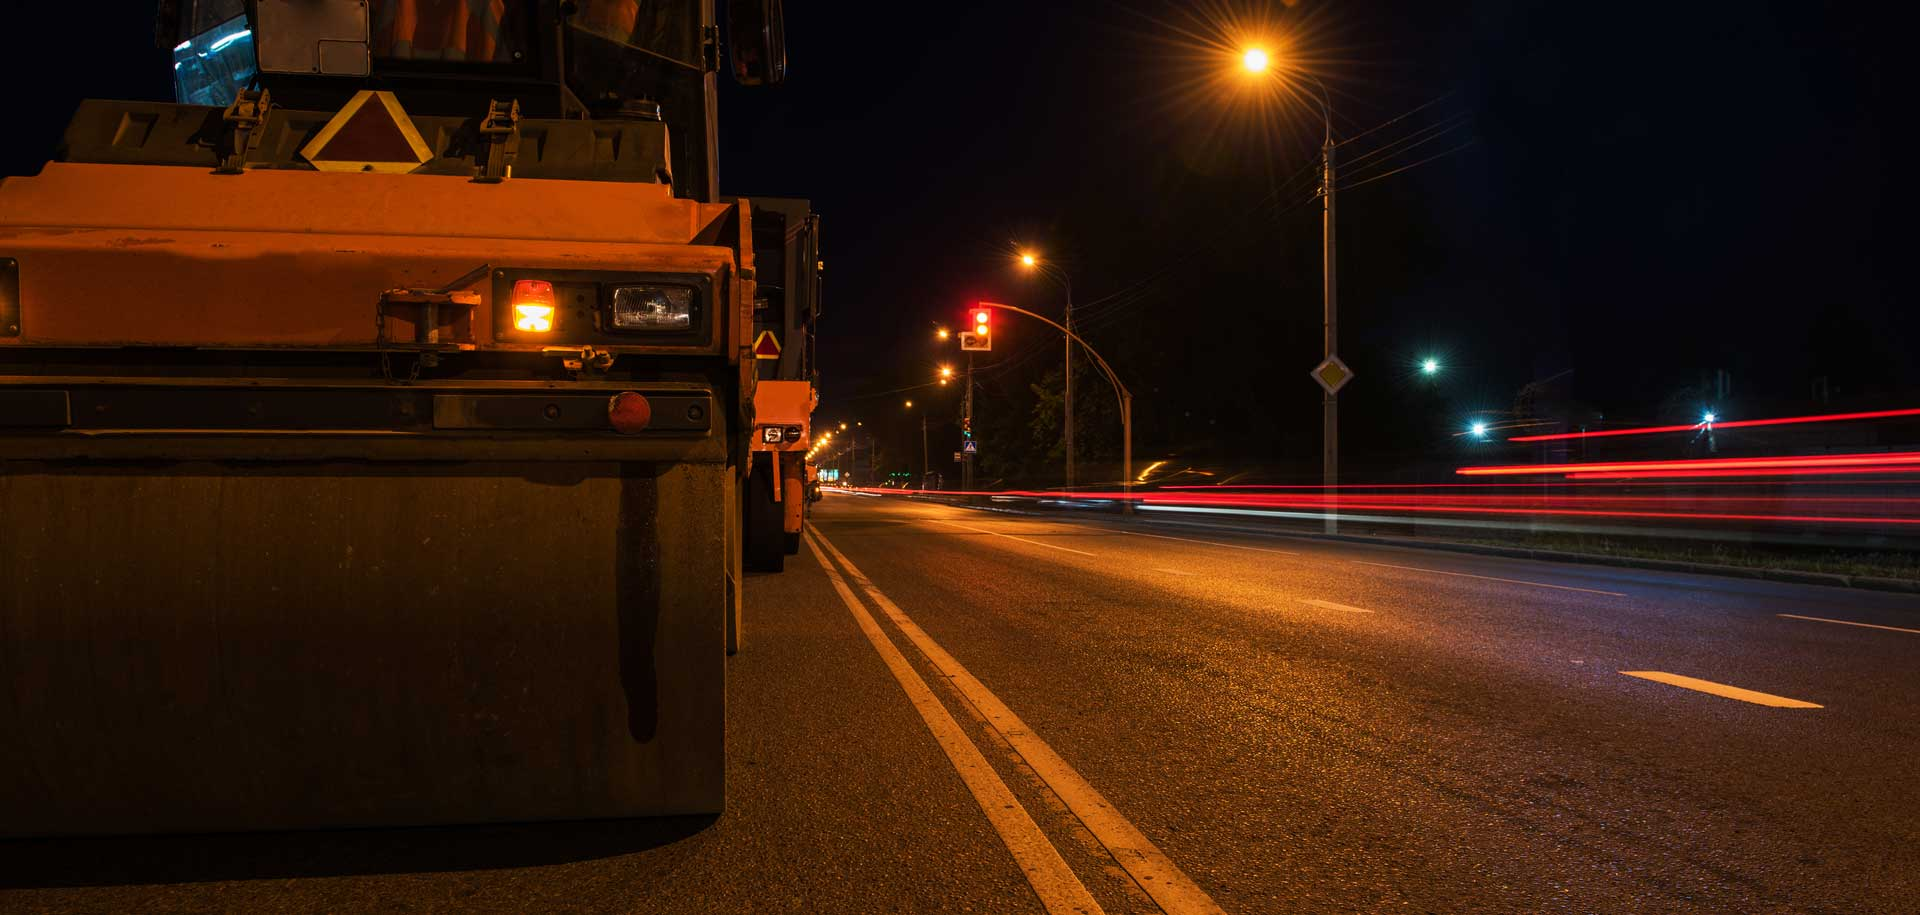 Trucks on road at night